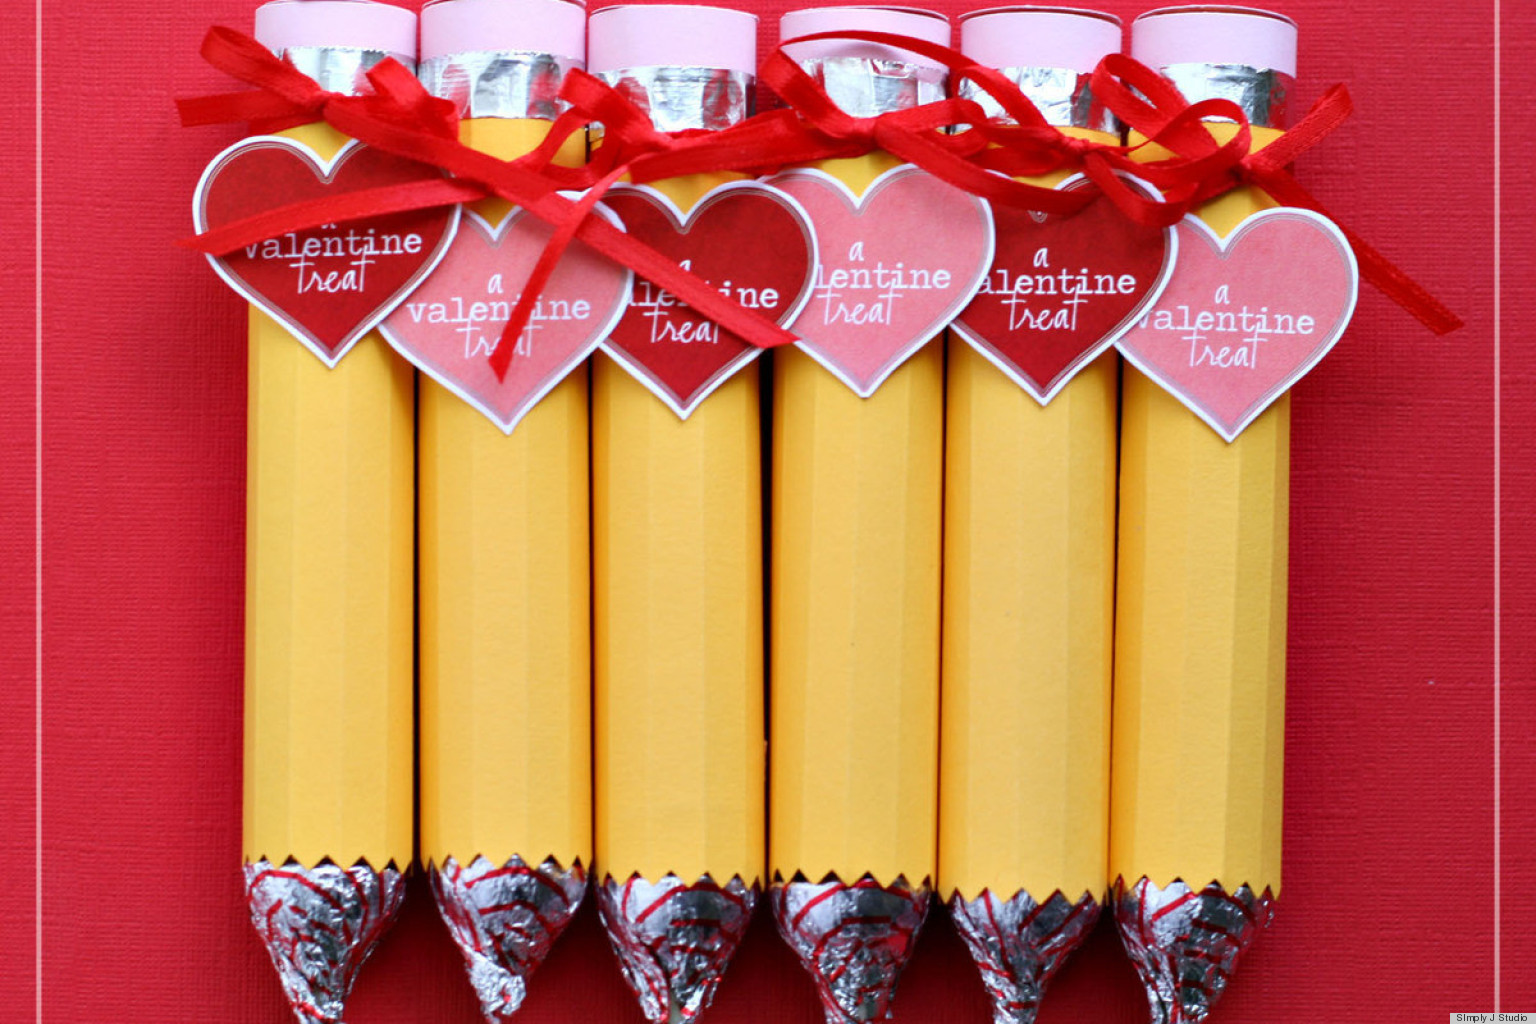 Valentines Day Kid Crafts That Even Grown Ups Will Love PHOTOS HuffPost